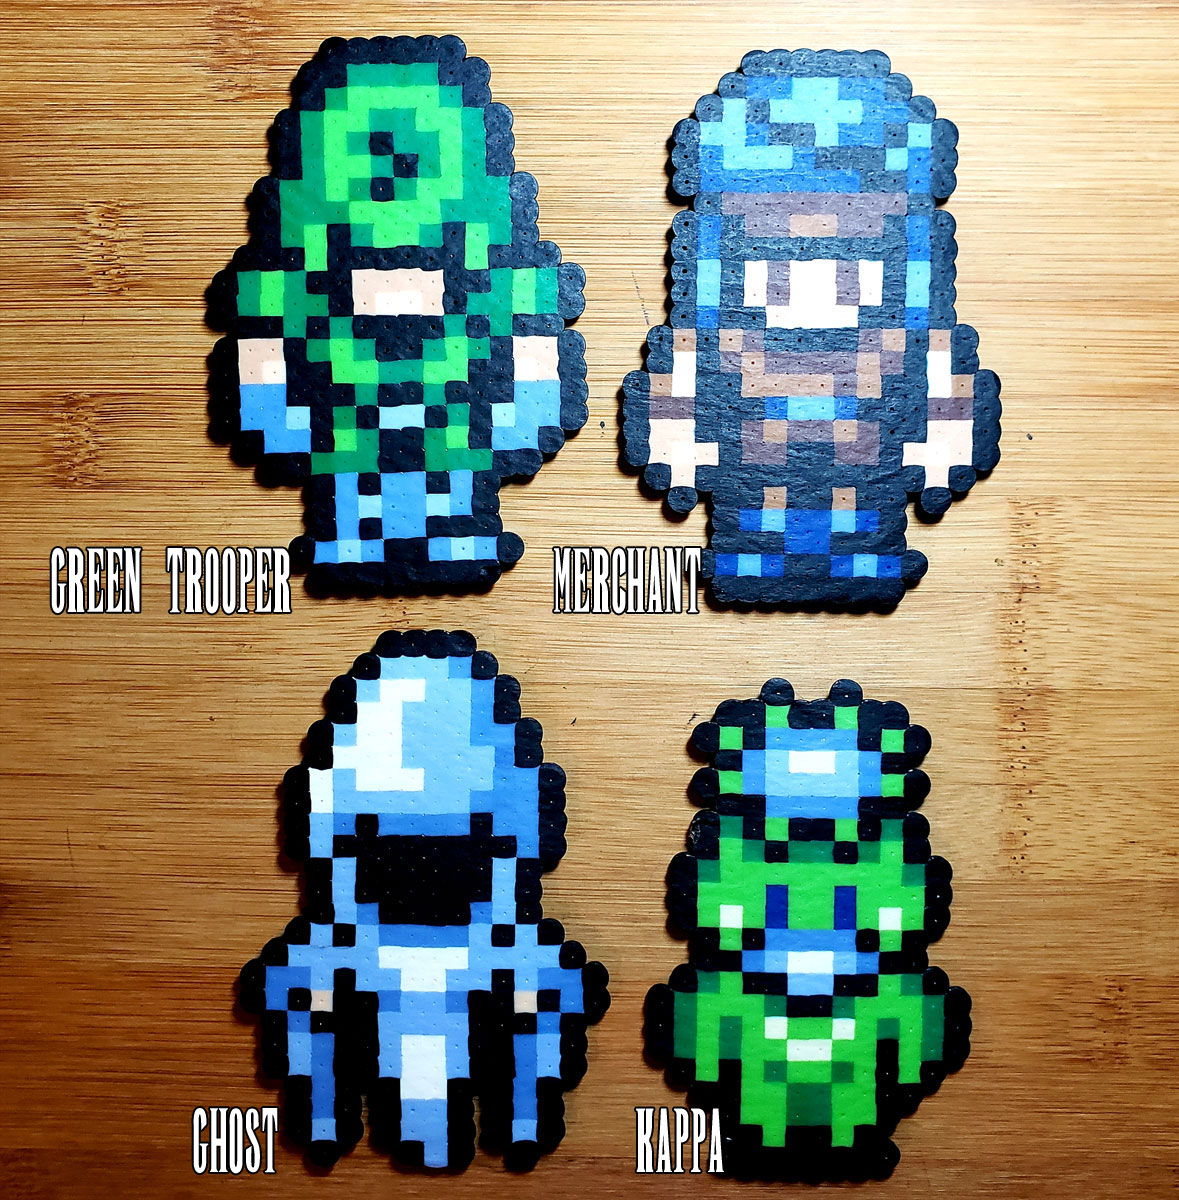 1000+ images about Final fantasy on Pinterest | Final ... |Ff6 Shadow Sprite